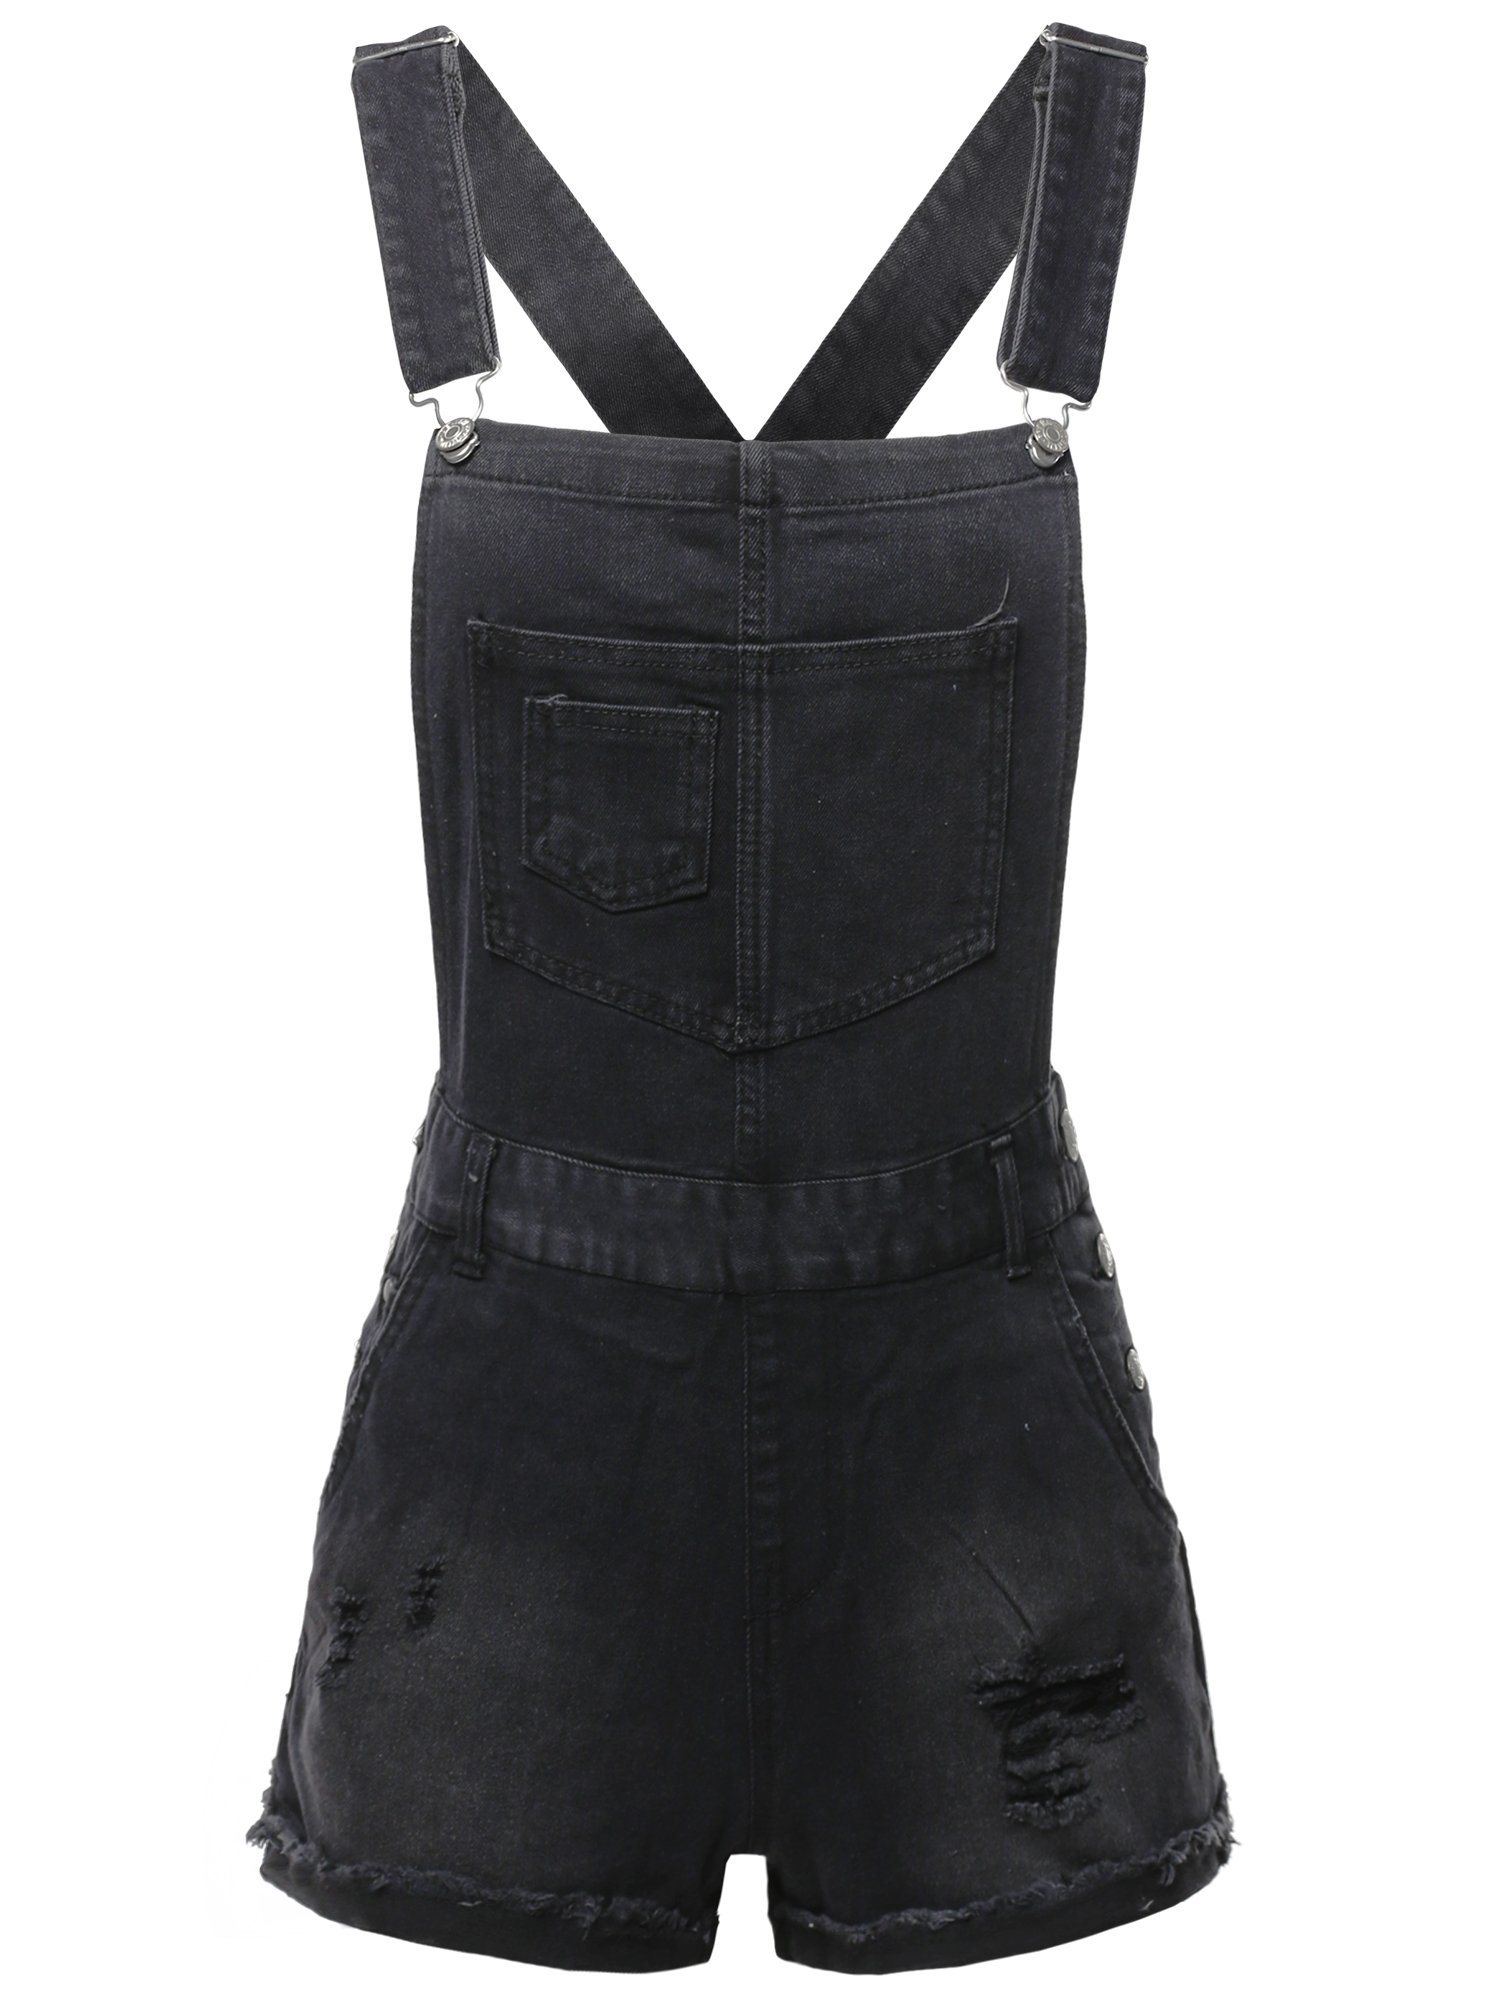 Made by Emma Casual Black Single Chest Pocket Adjustable Straps Cute Short Overalls M